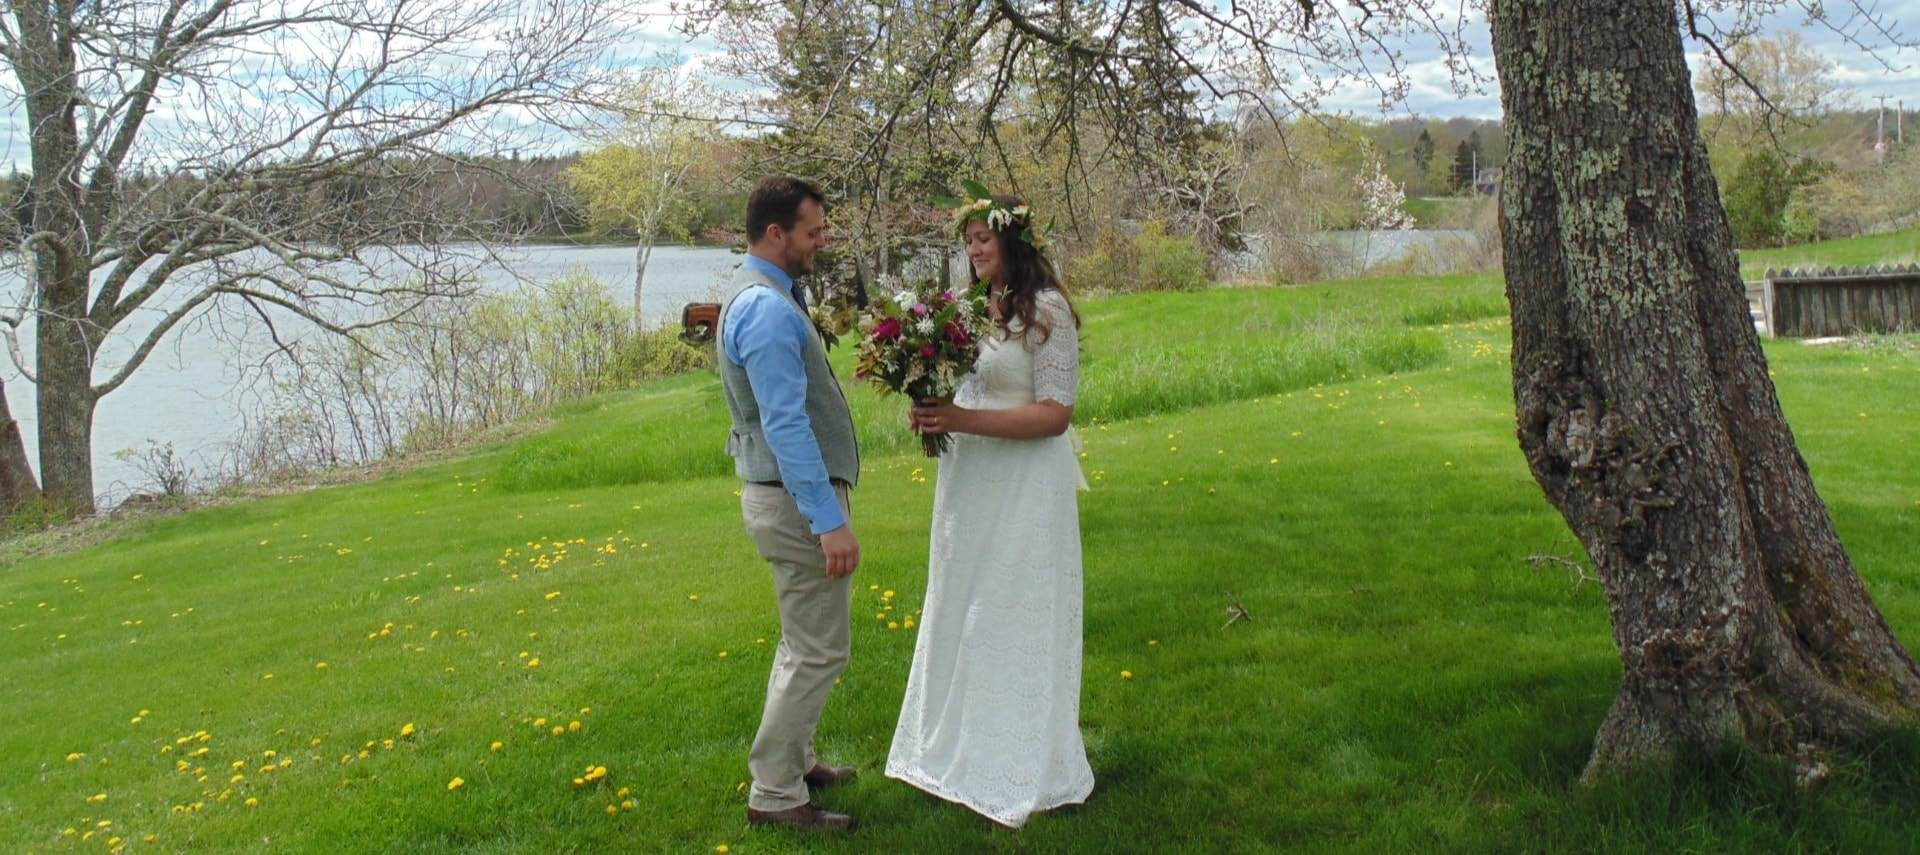 Bride in white dress and groom in blue shirt, gray vest, and khakis standing on green grass surrounded by trees with a body of water in the background